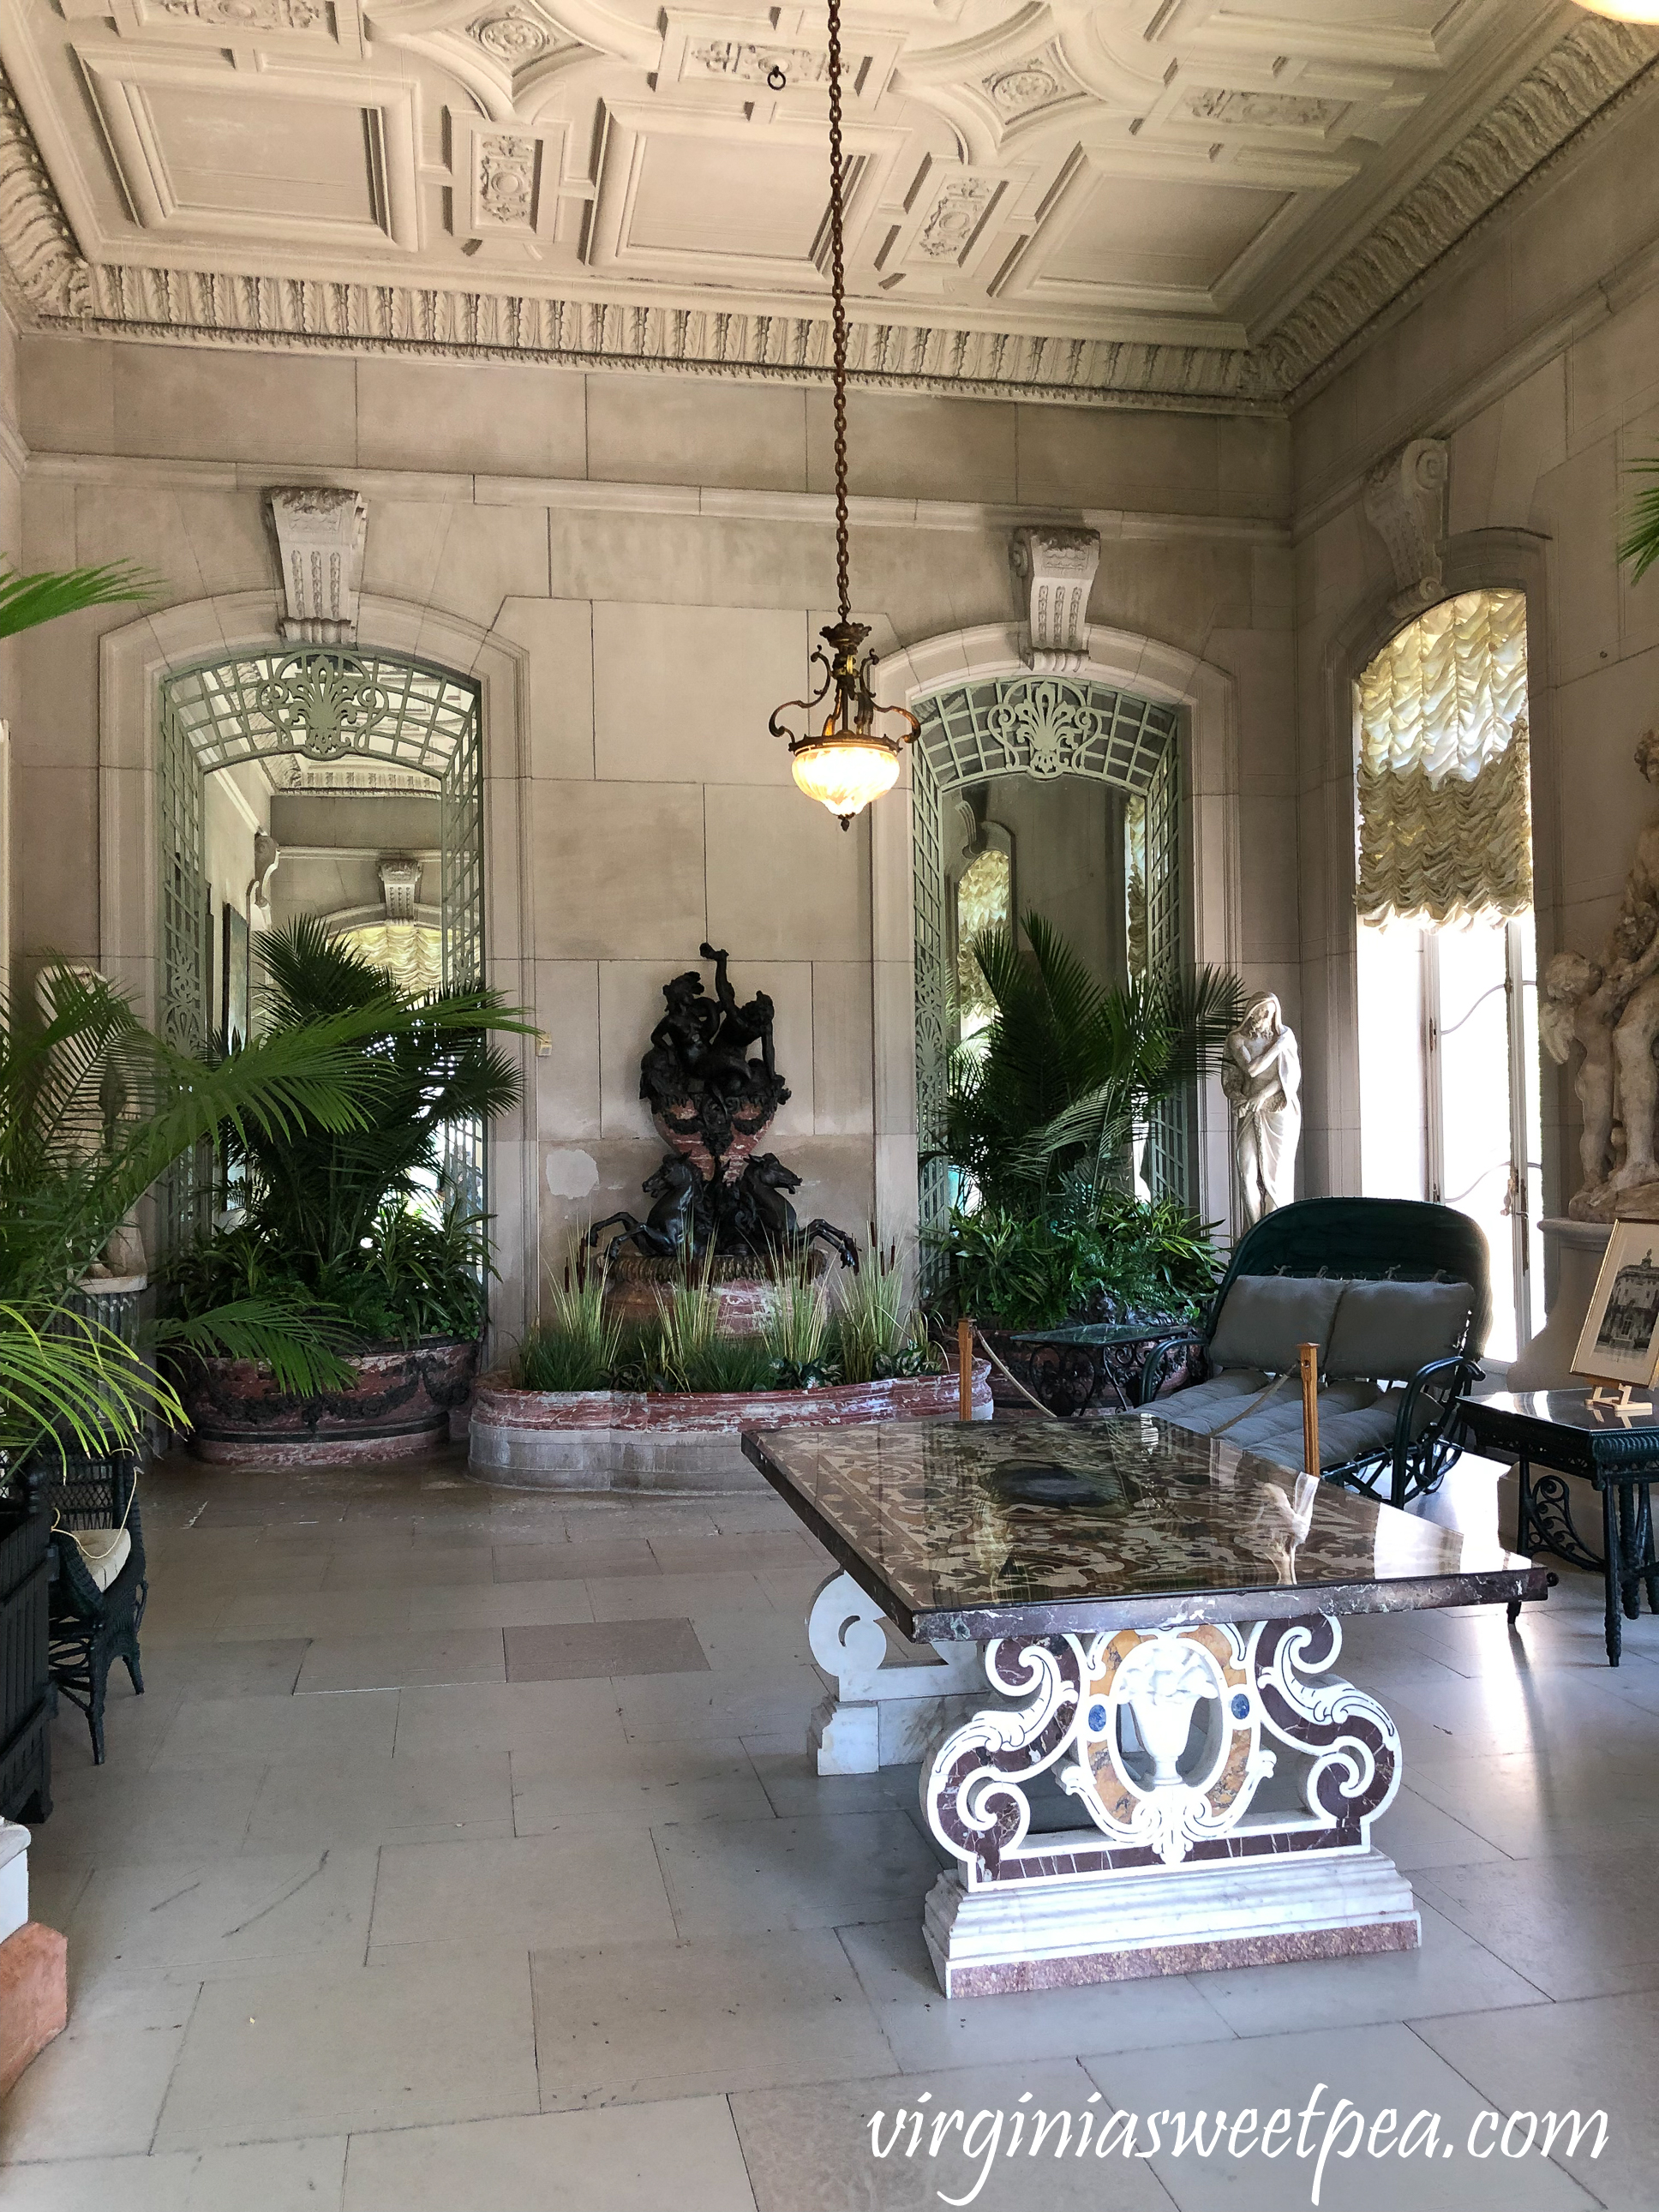 The conservatory in The Elms in Newport, RI